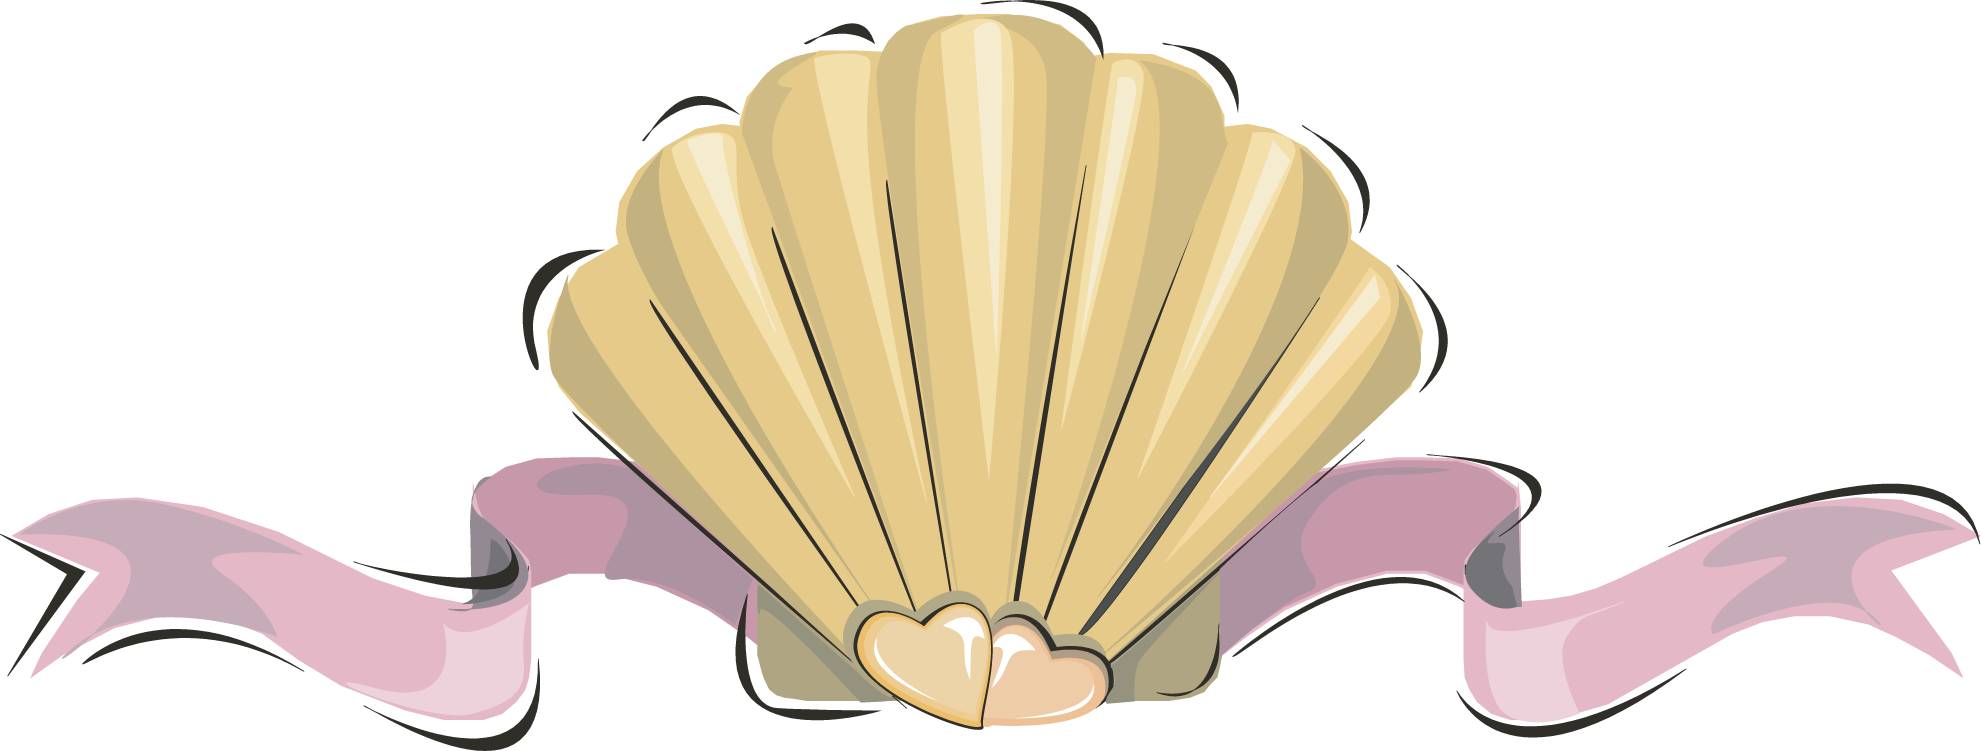 Clam oyster seashell clip. Shell clipart clamshell